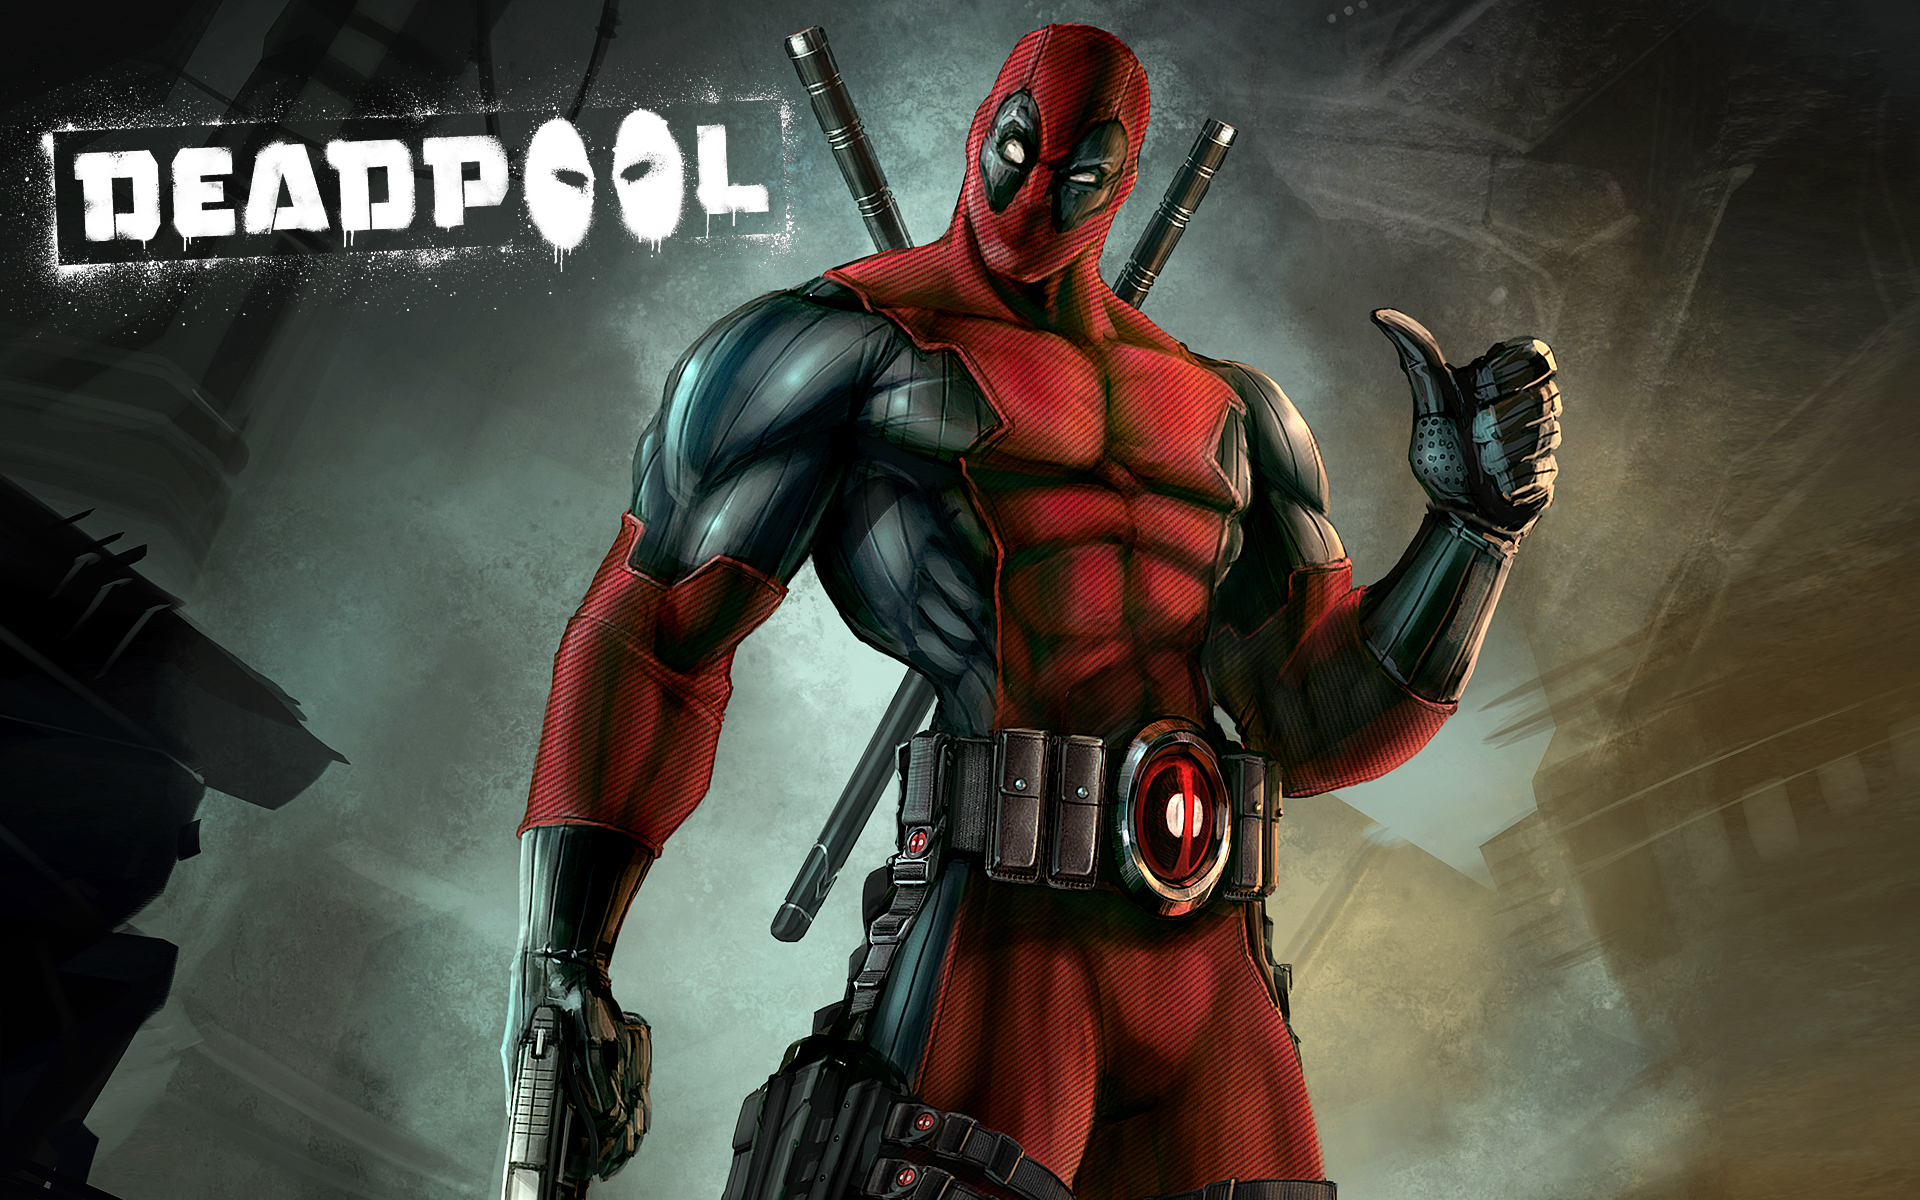 Deadpool Marvel Comics Super Hero Avenger Background Hd Wallpaper